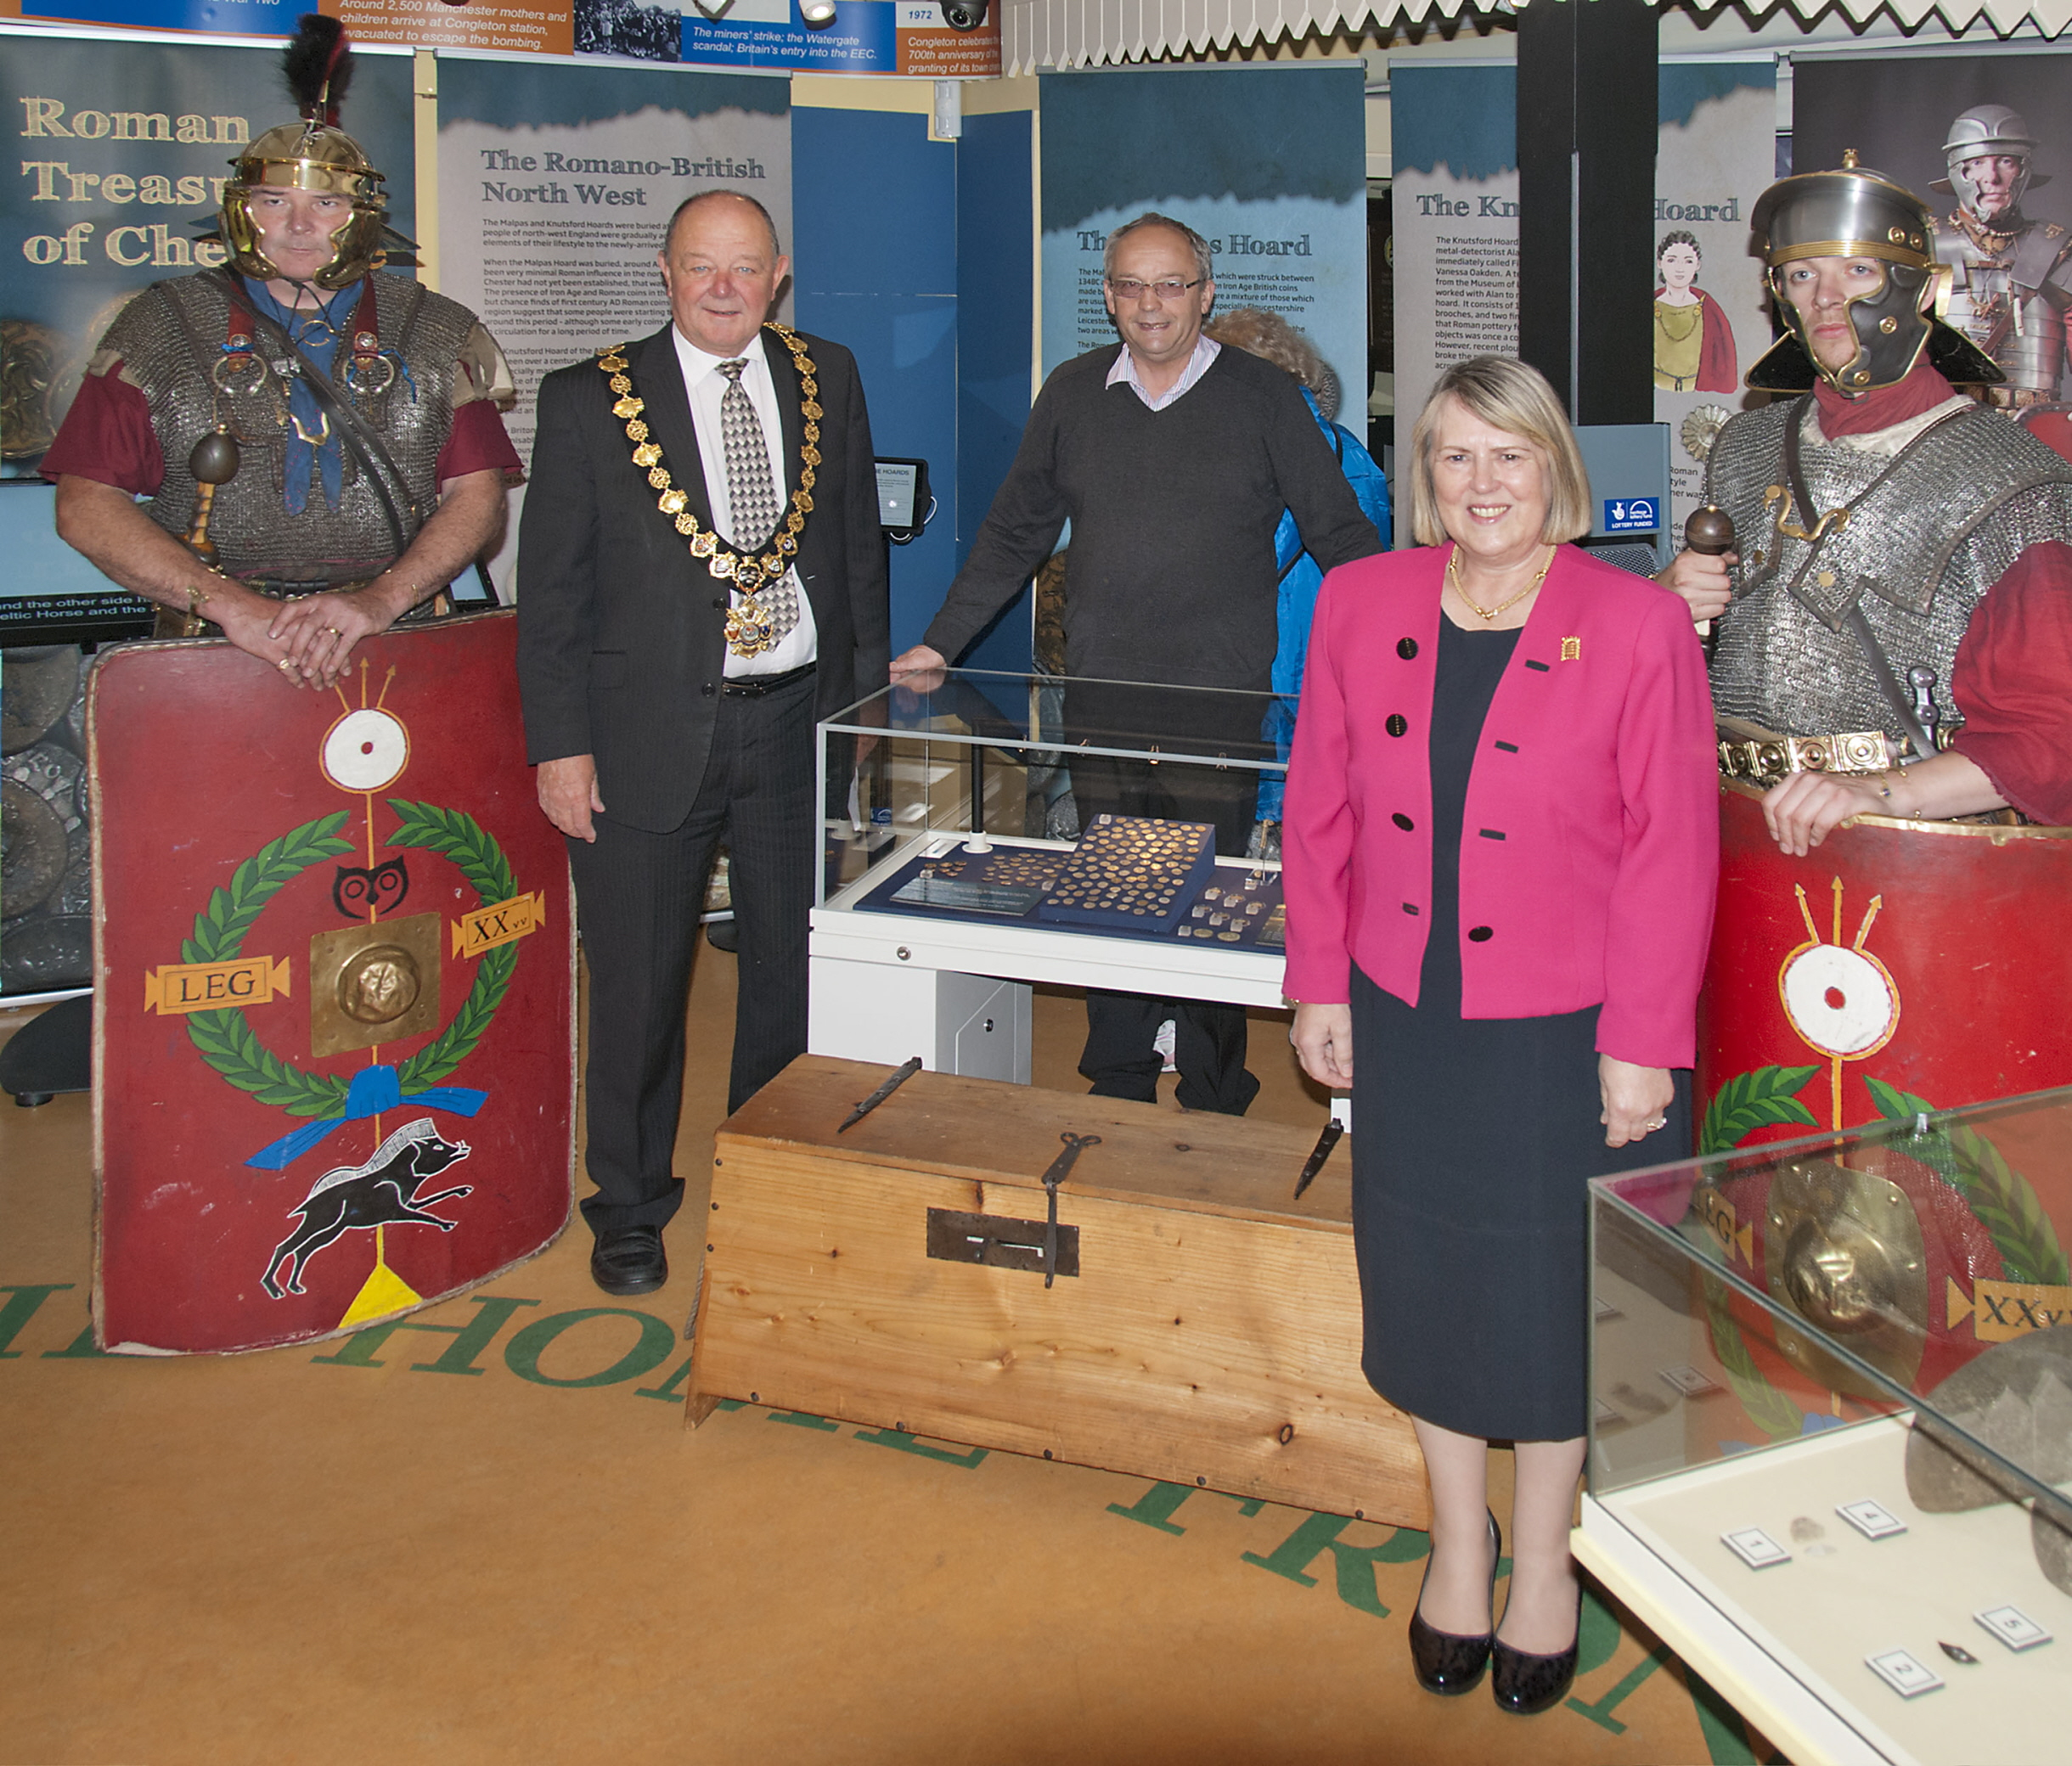 Opening of the Hoards Exhibition with centurions from the Deva Victrix, Cllr D Brown (Mayor) Ian Doughty (Chair Museum Trust) Fiona Bruce MP - Photo Chris Sheard